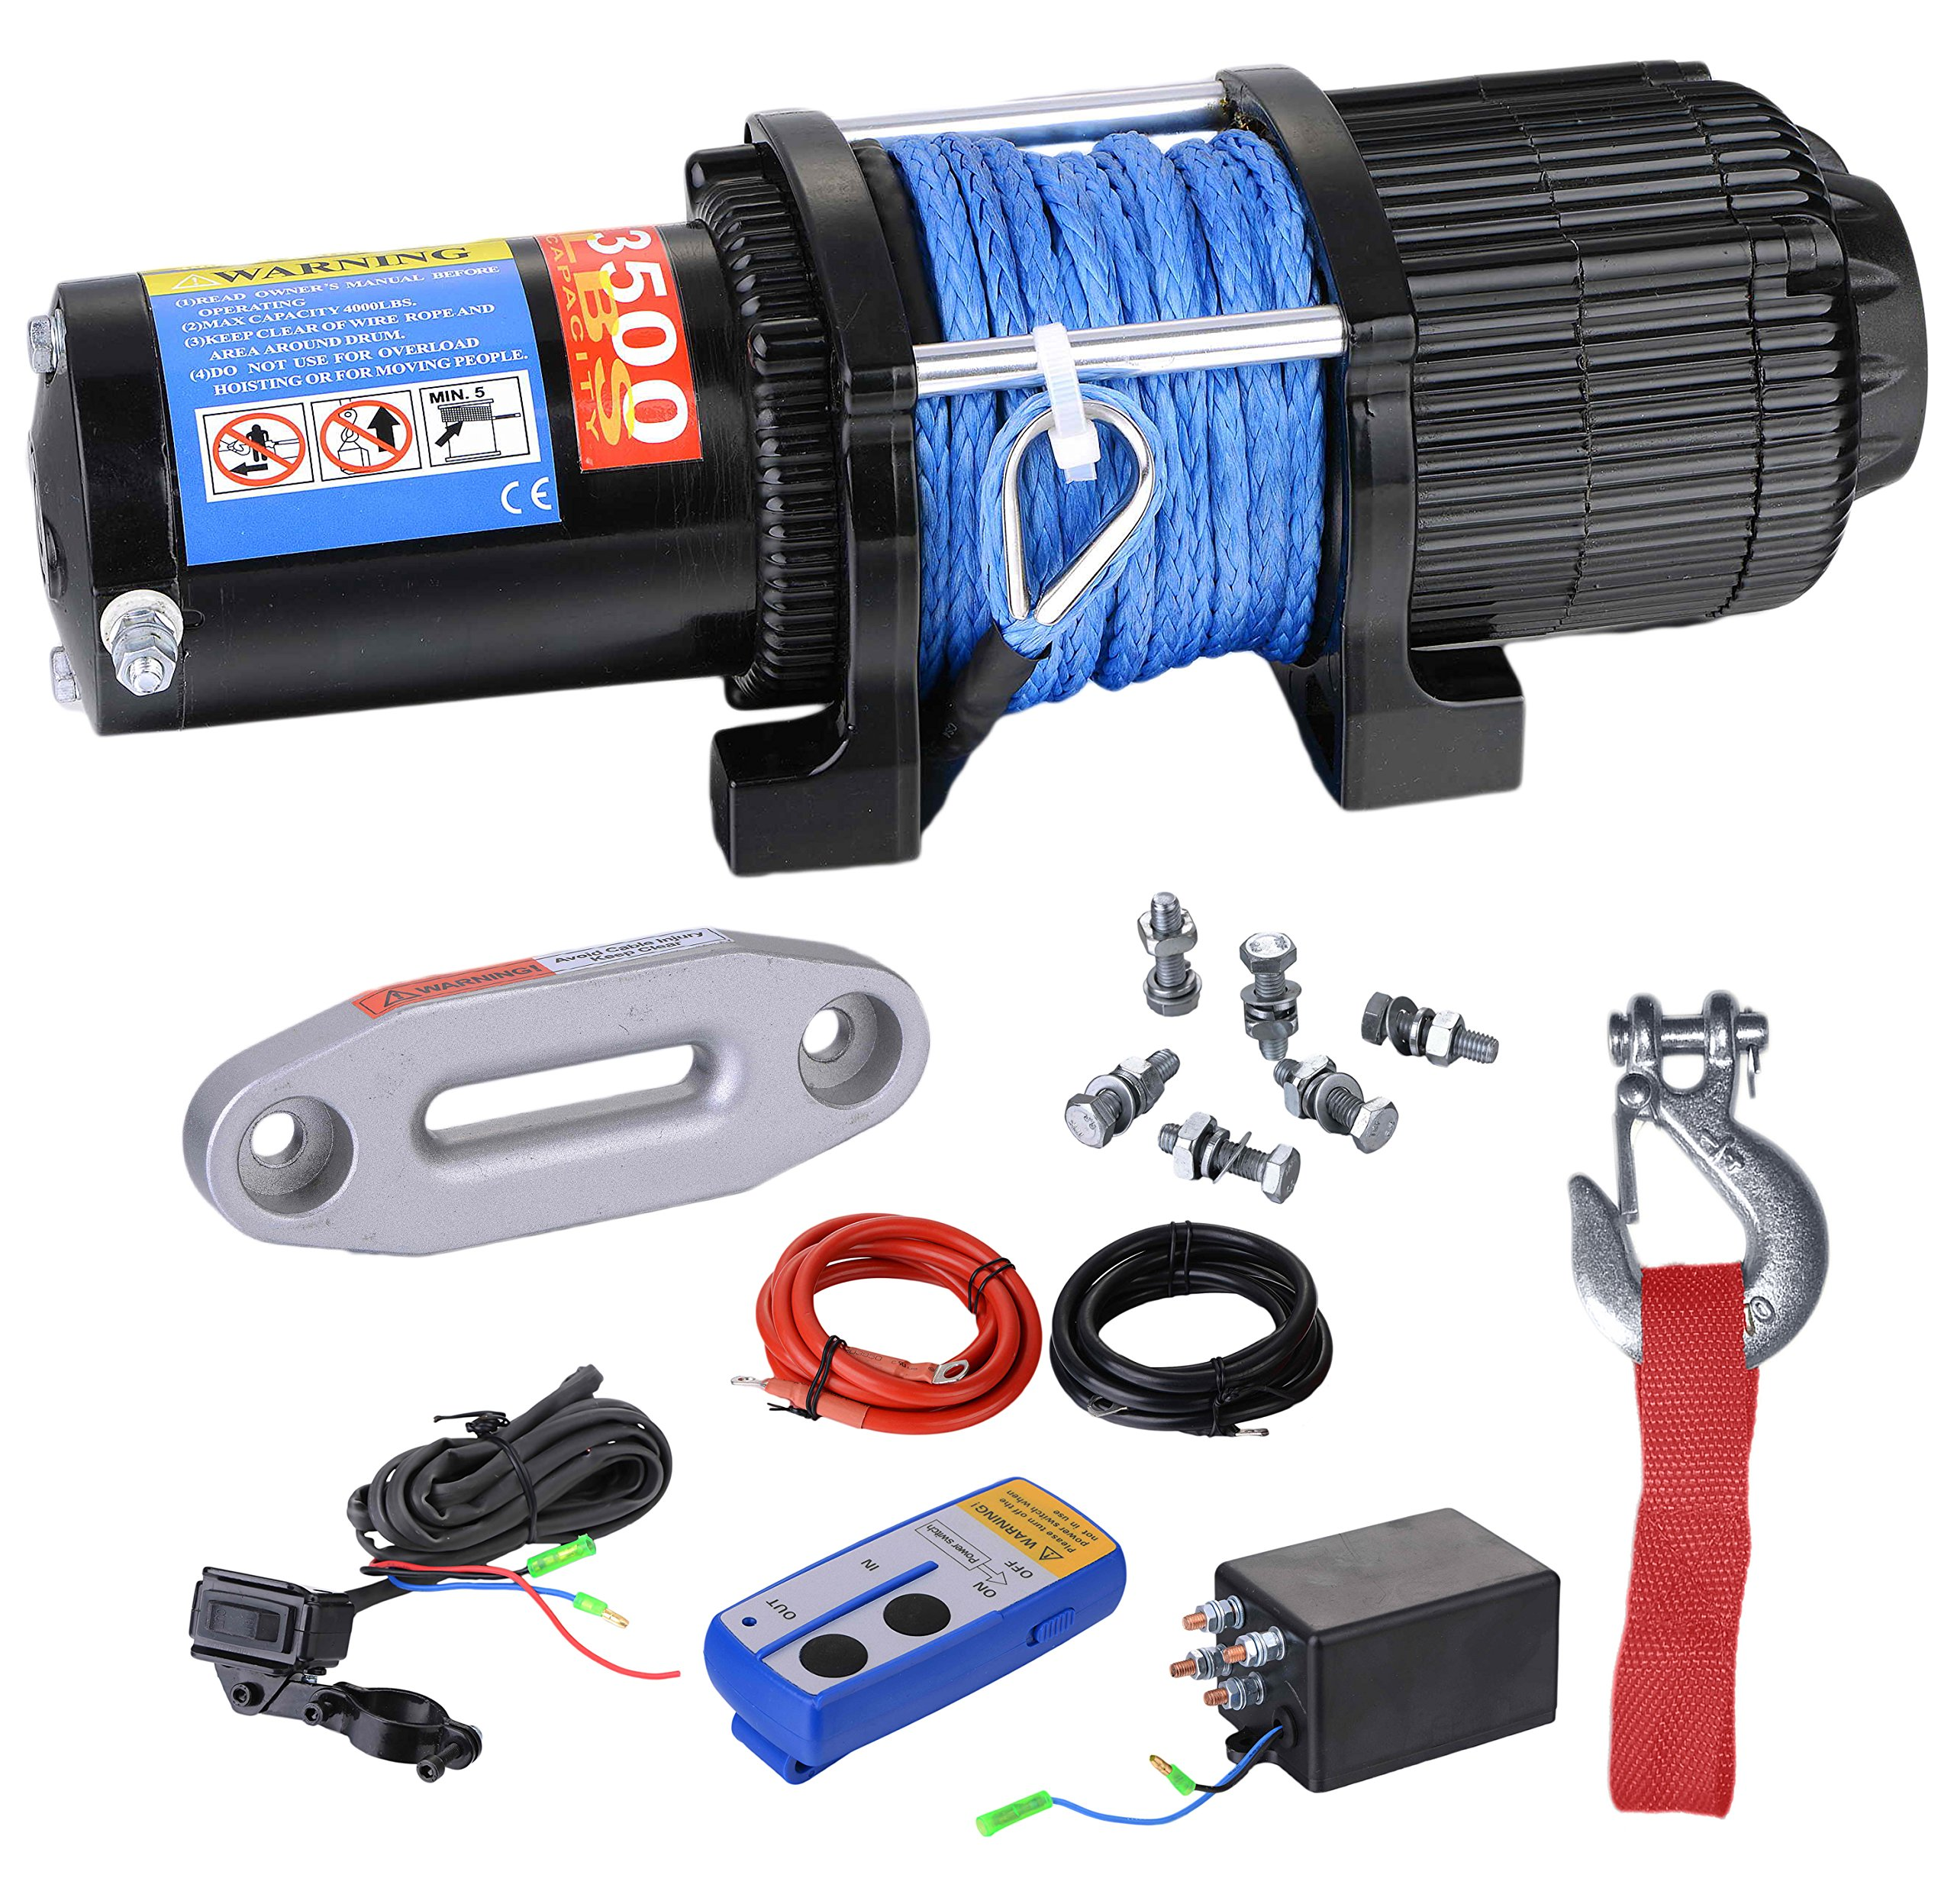 BIZ Tow Recovery Winch 3500lbs Capacity Electric Winch Synthetic Rope Winch for ATV/UTV,3500D-1S